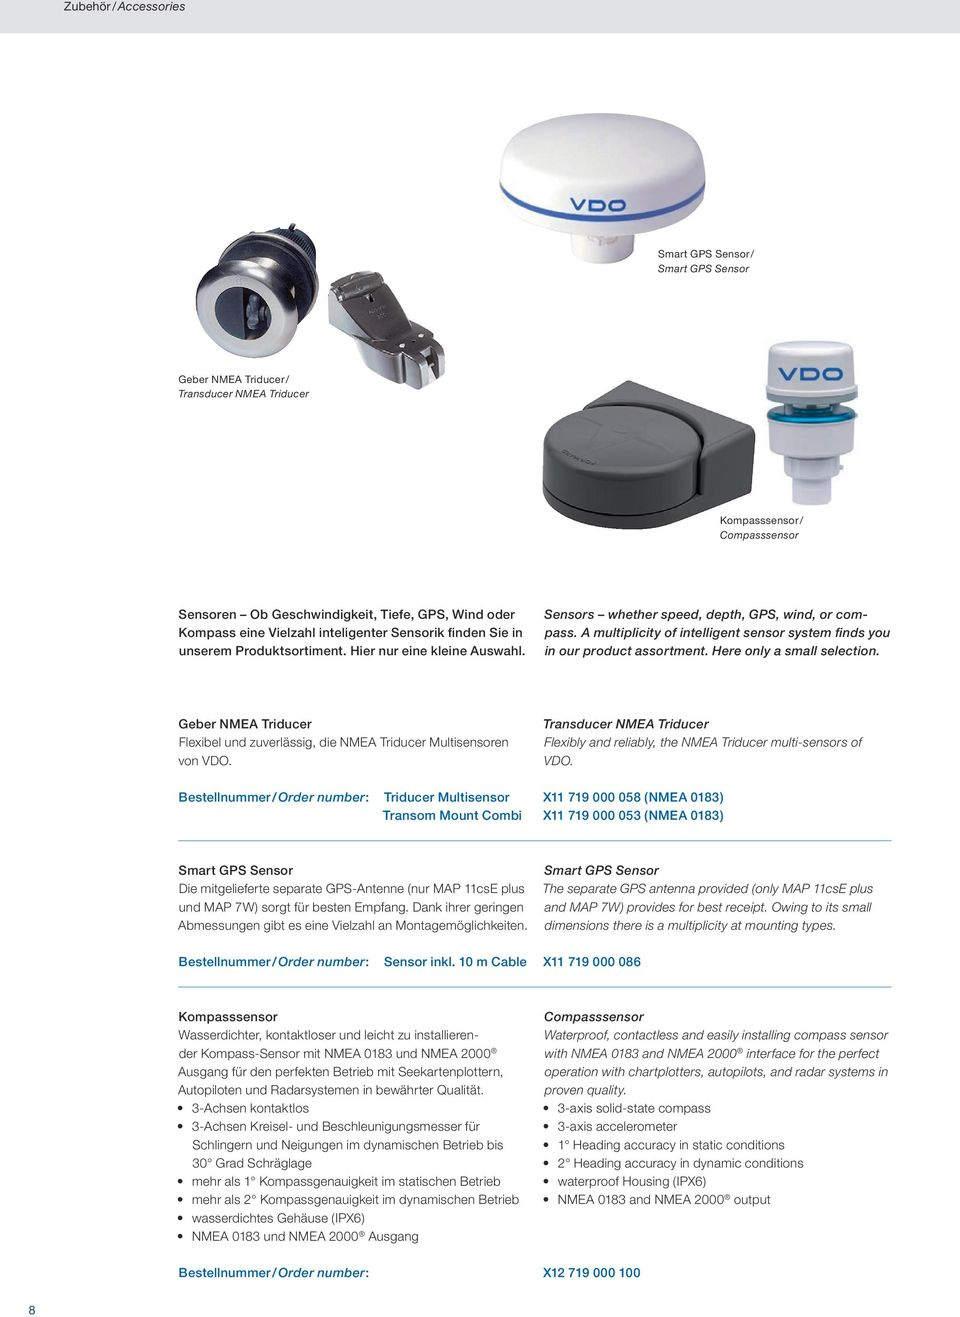 A multiplicity of intelligent sensor system finds you in our product assortment. Here only a small selection. Geber NMEA Triducer Flexibel und zuverlässig, die NMEA Triducer Multisensoren von VDO.